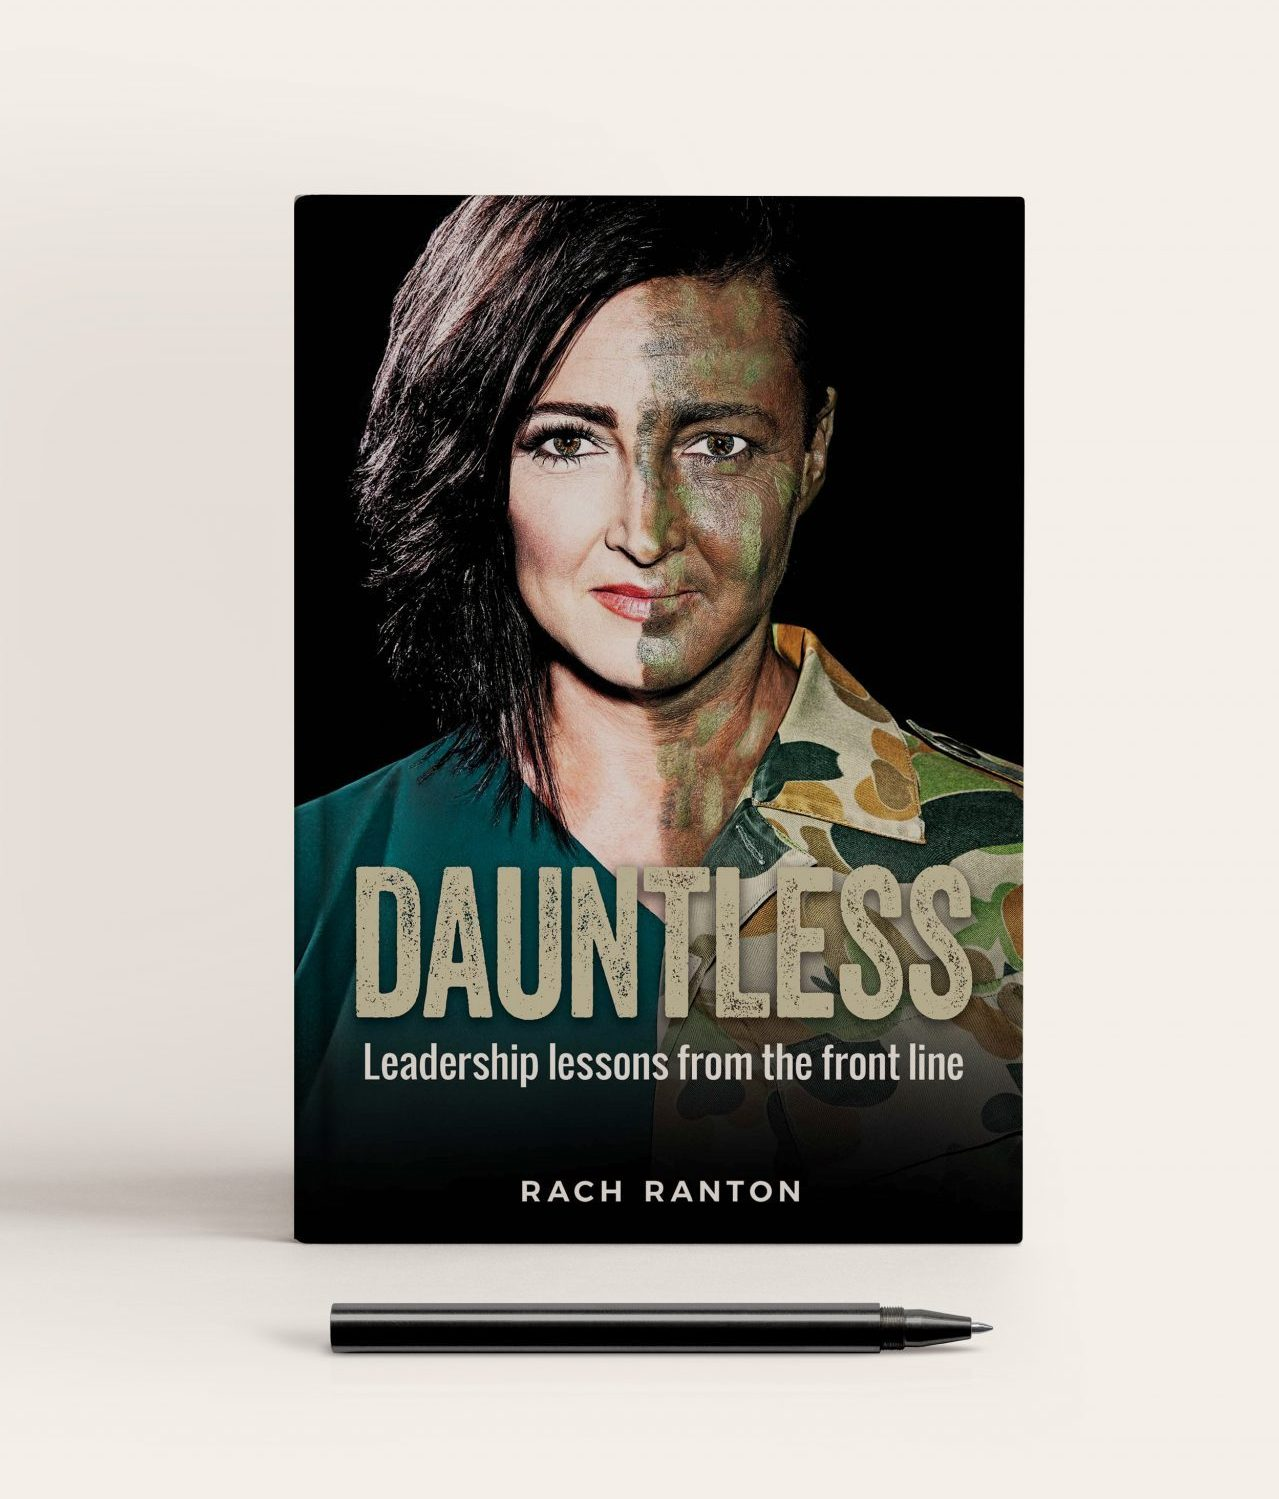 Dauntless. Leadership lessons from the frontline. Photo of book cover by Rach Ranton